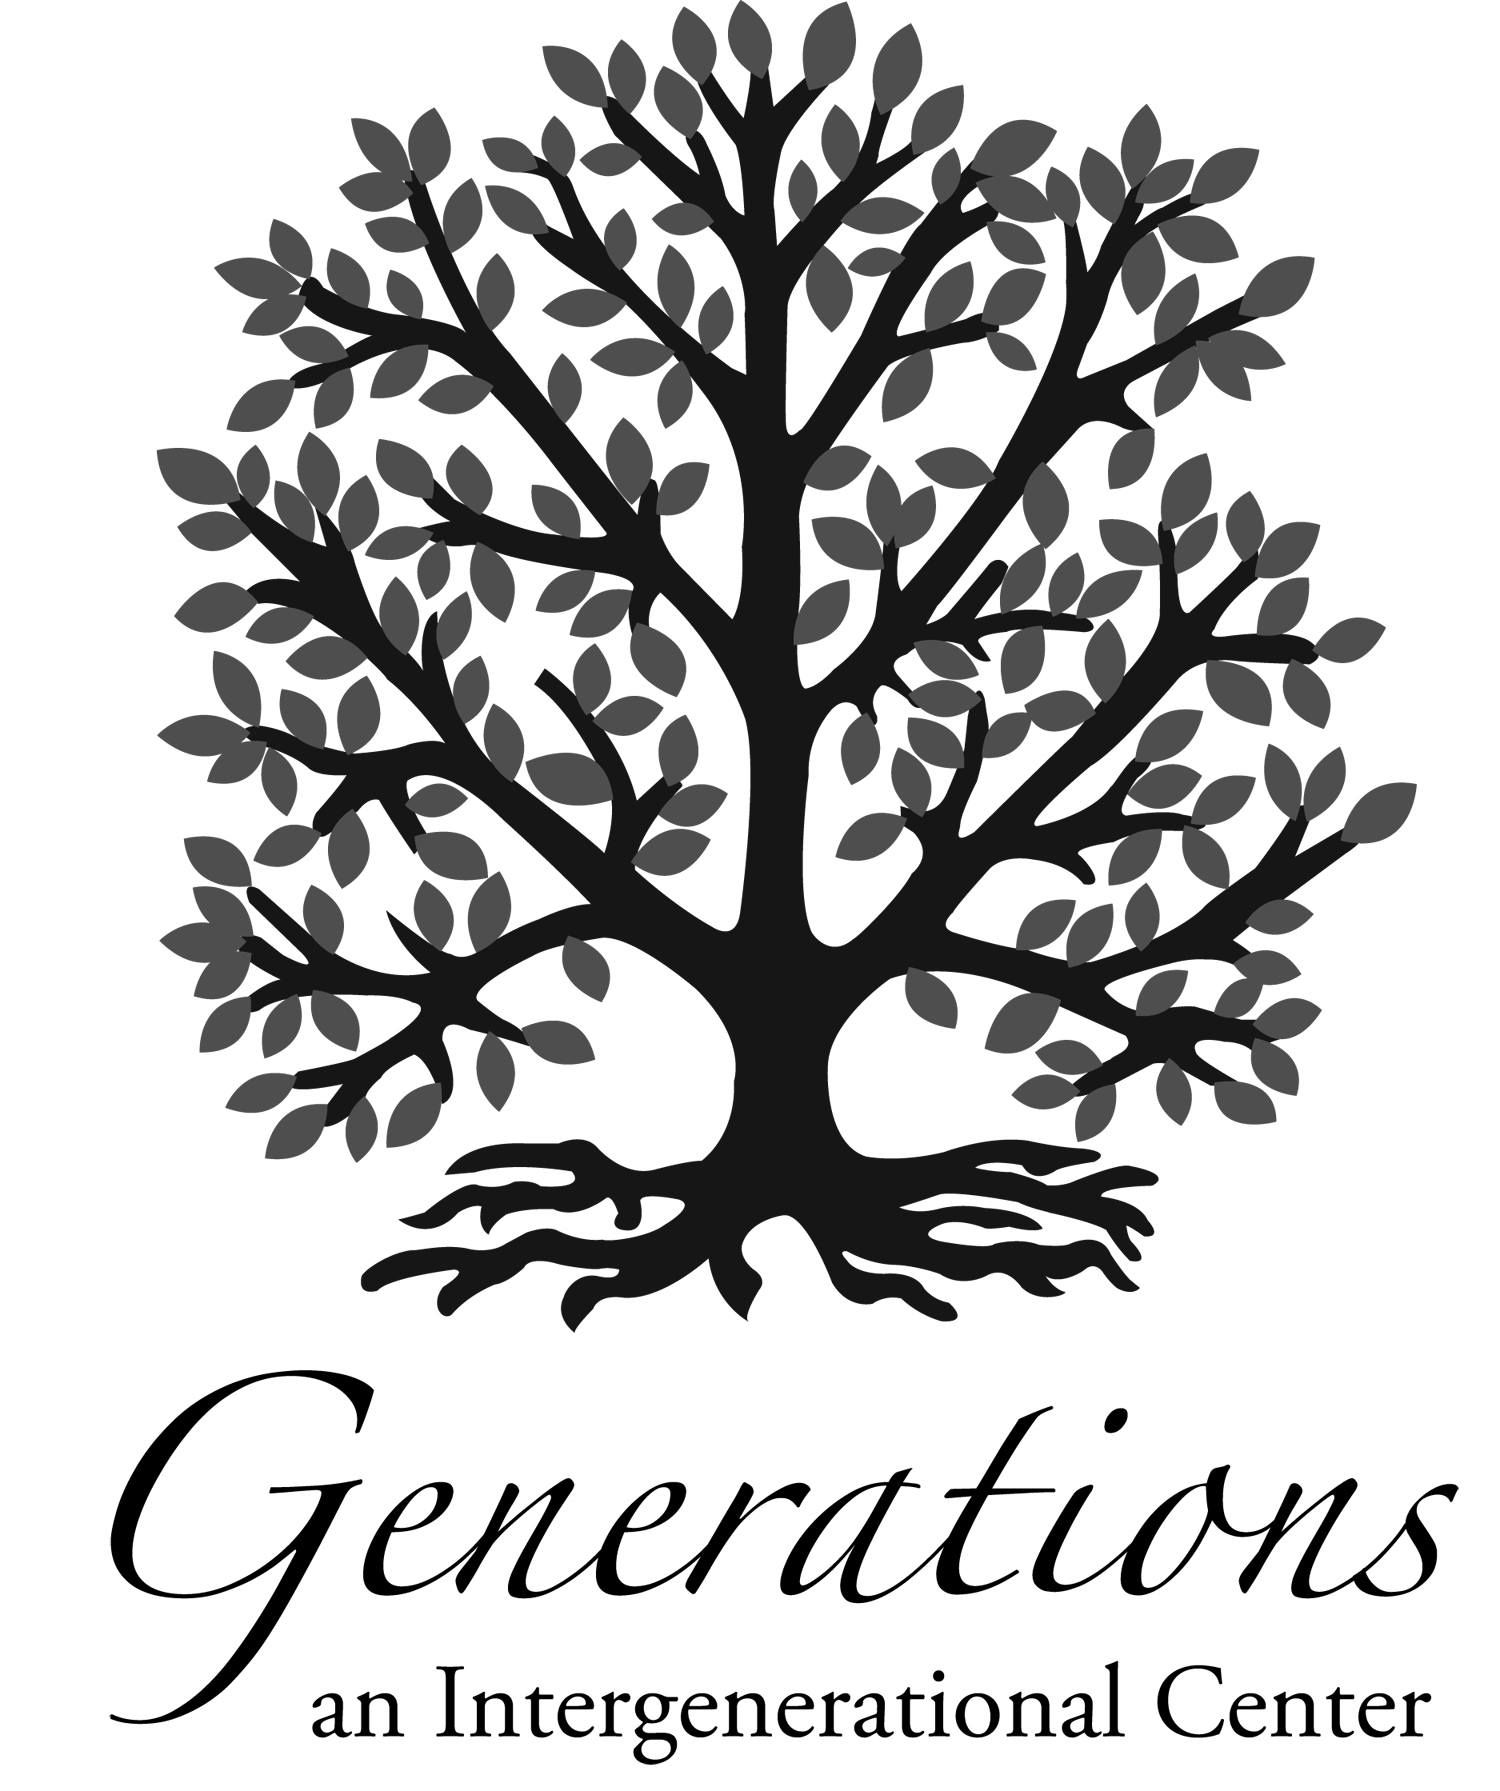 GENERATIONS Intergenerational Center